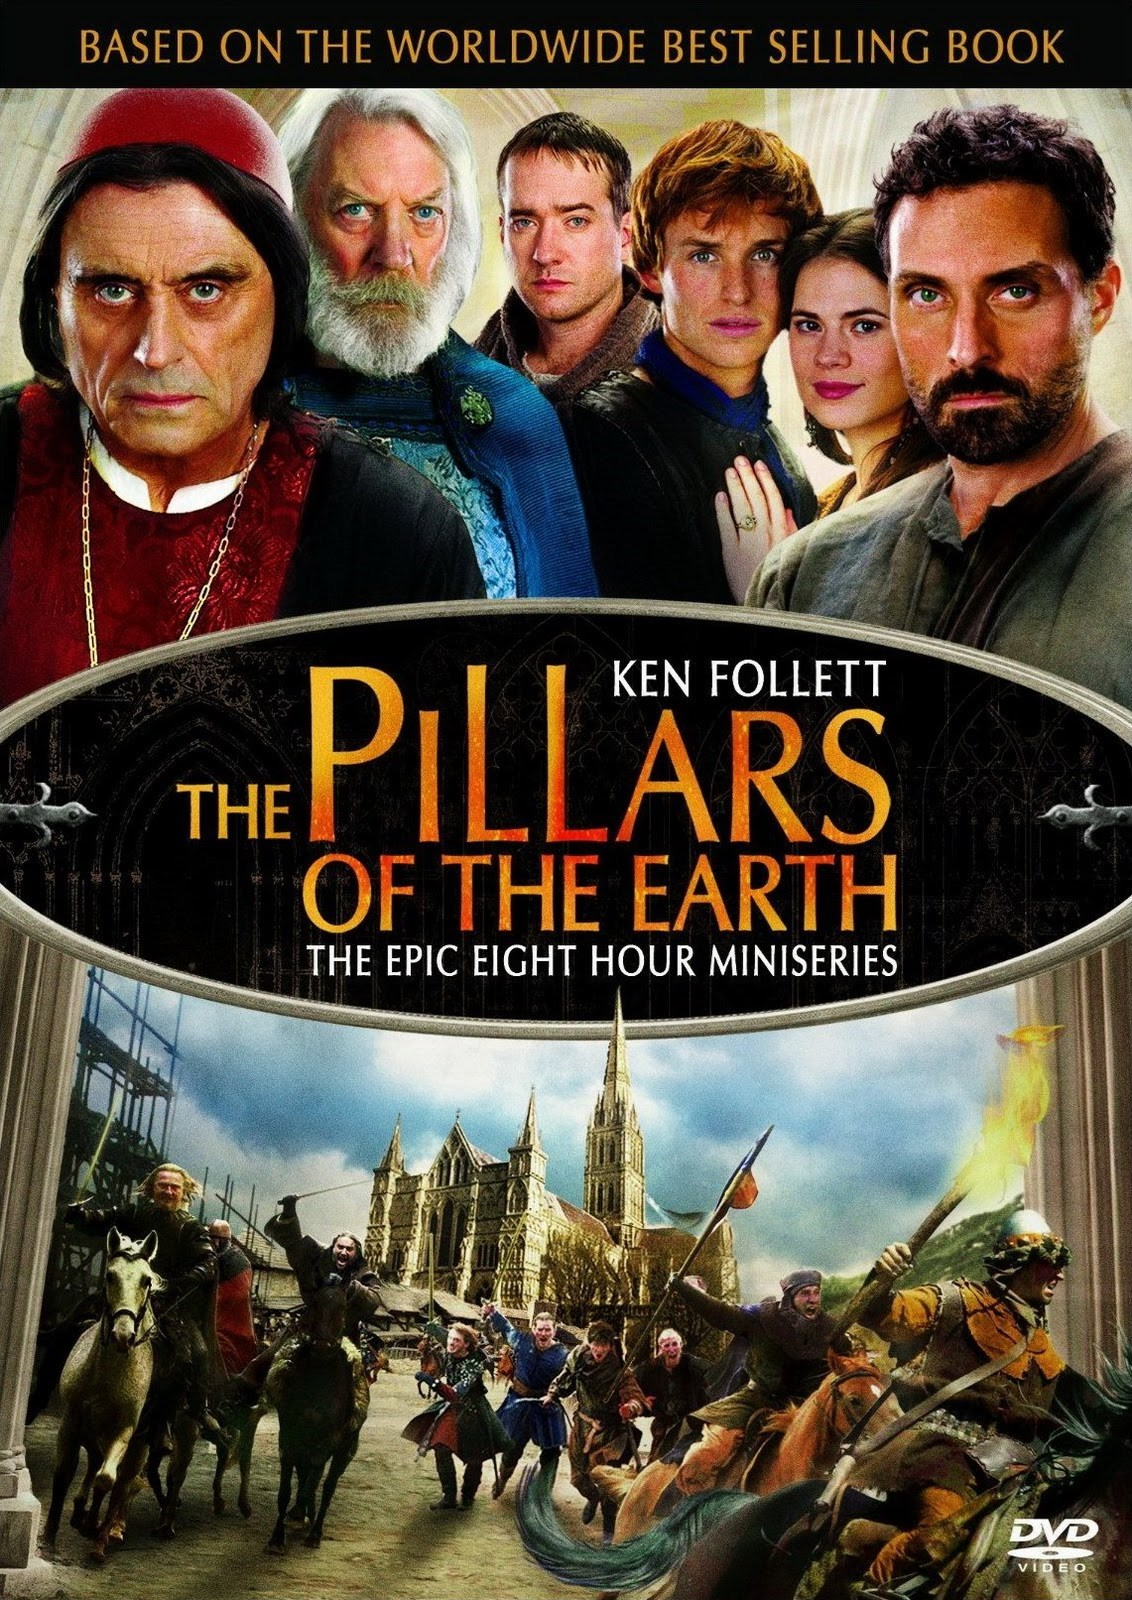 The Pillars of the Earth (2010 mini-series)